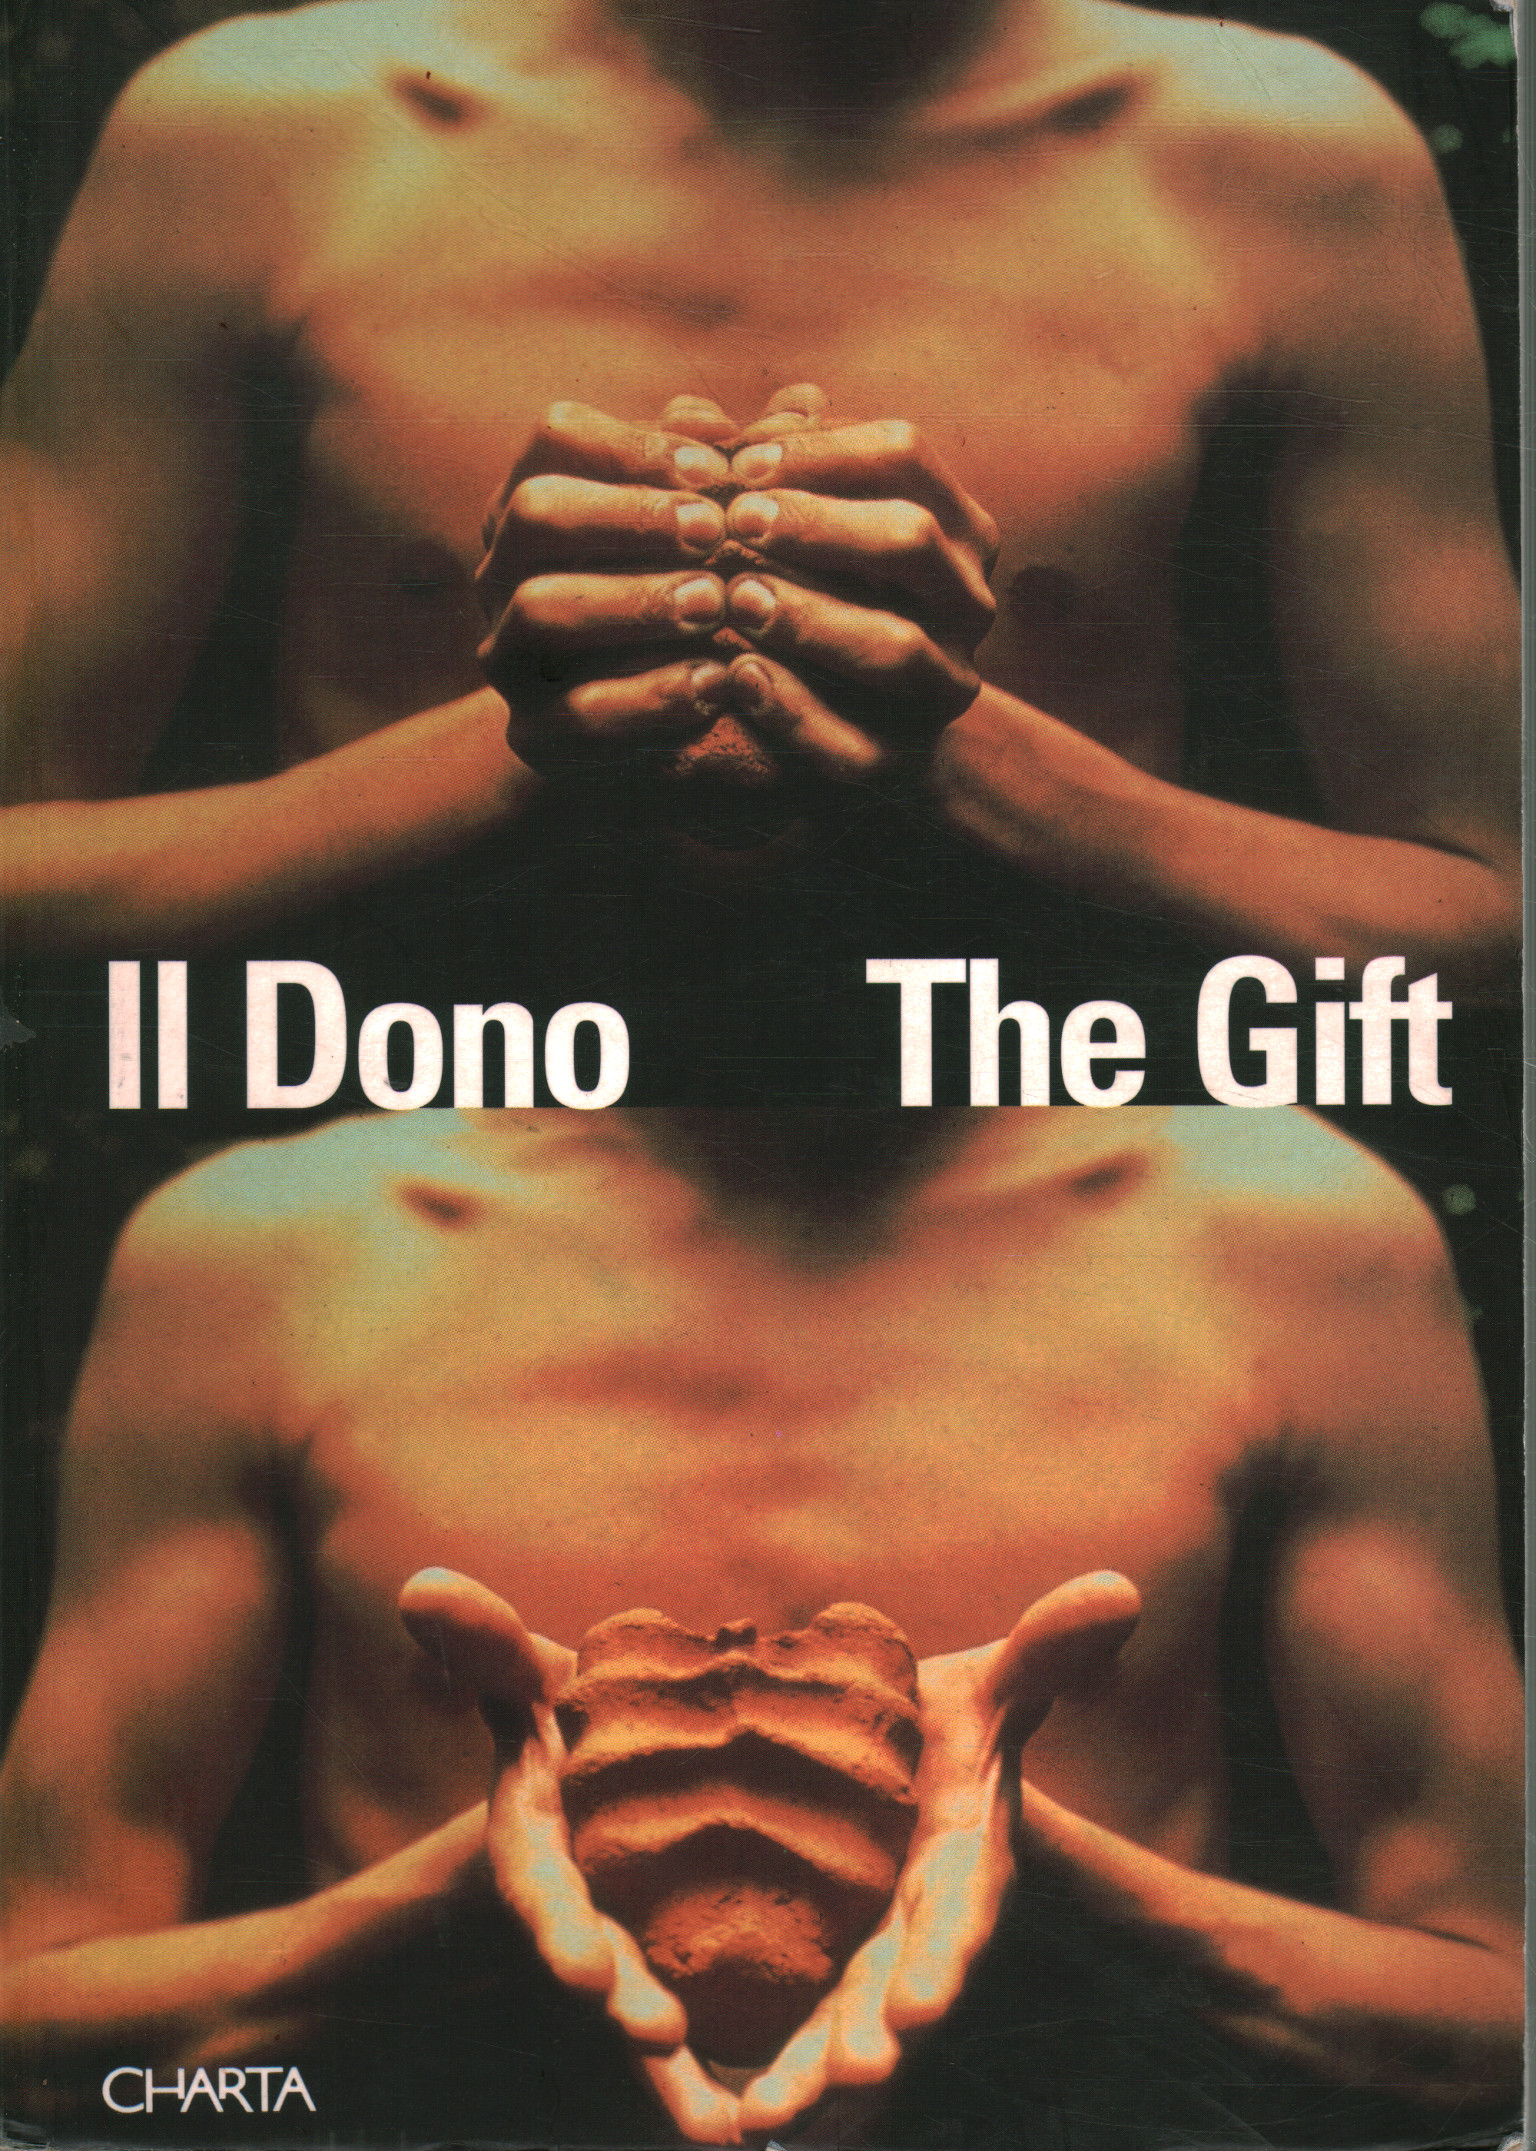 The gift / The gift, Gianfranco Maraniello Sergio Risaliti Antonio Somaini